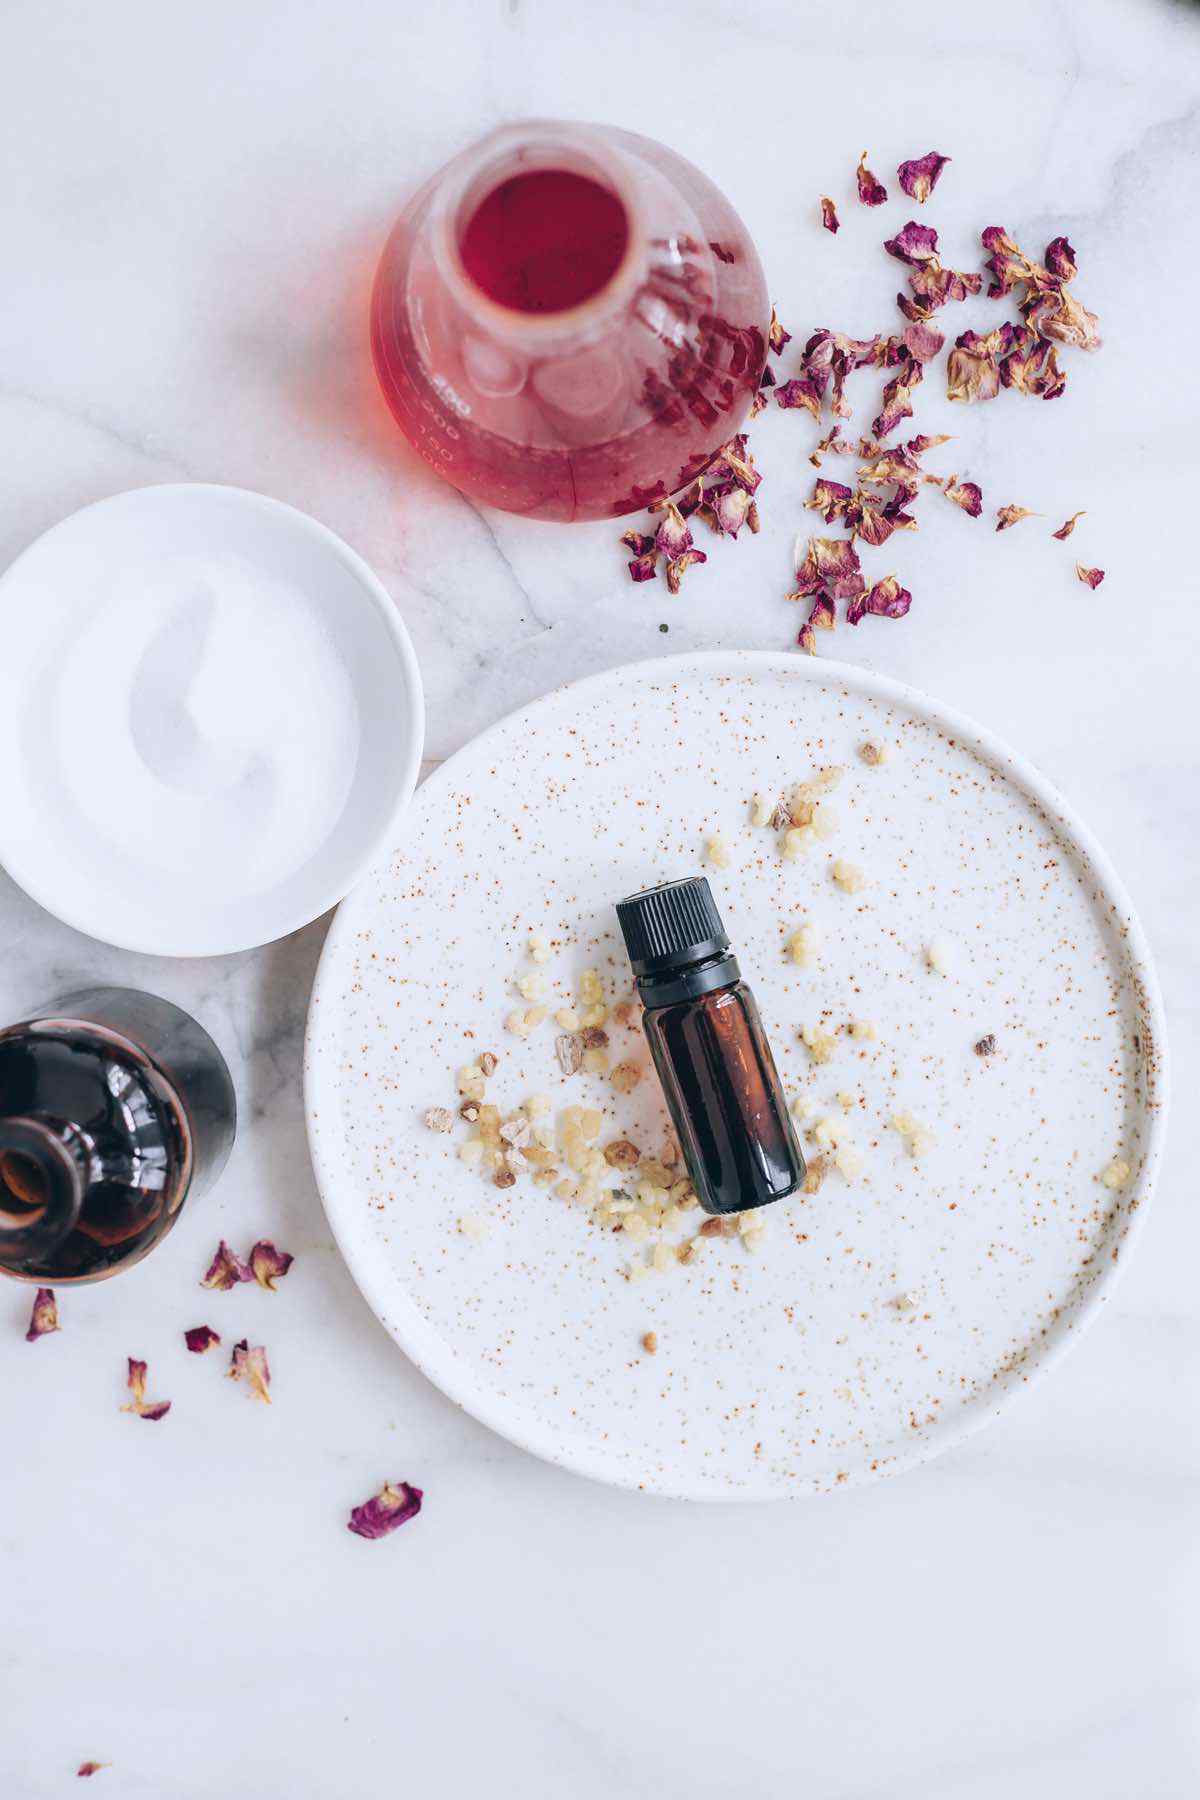 DIY Vitamin C Serum Face Mask Recipe